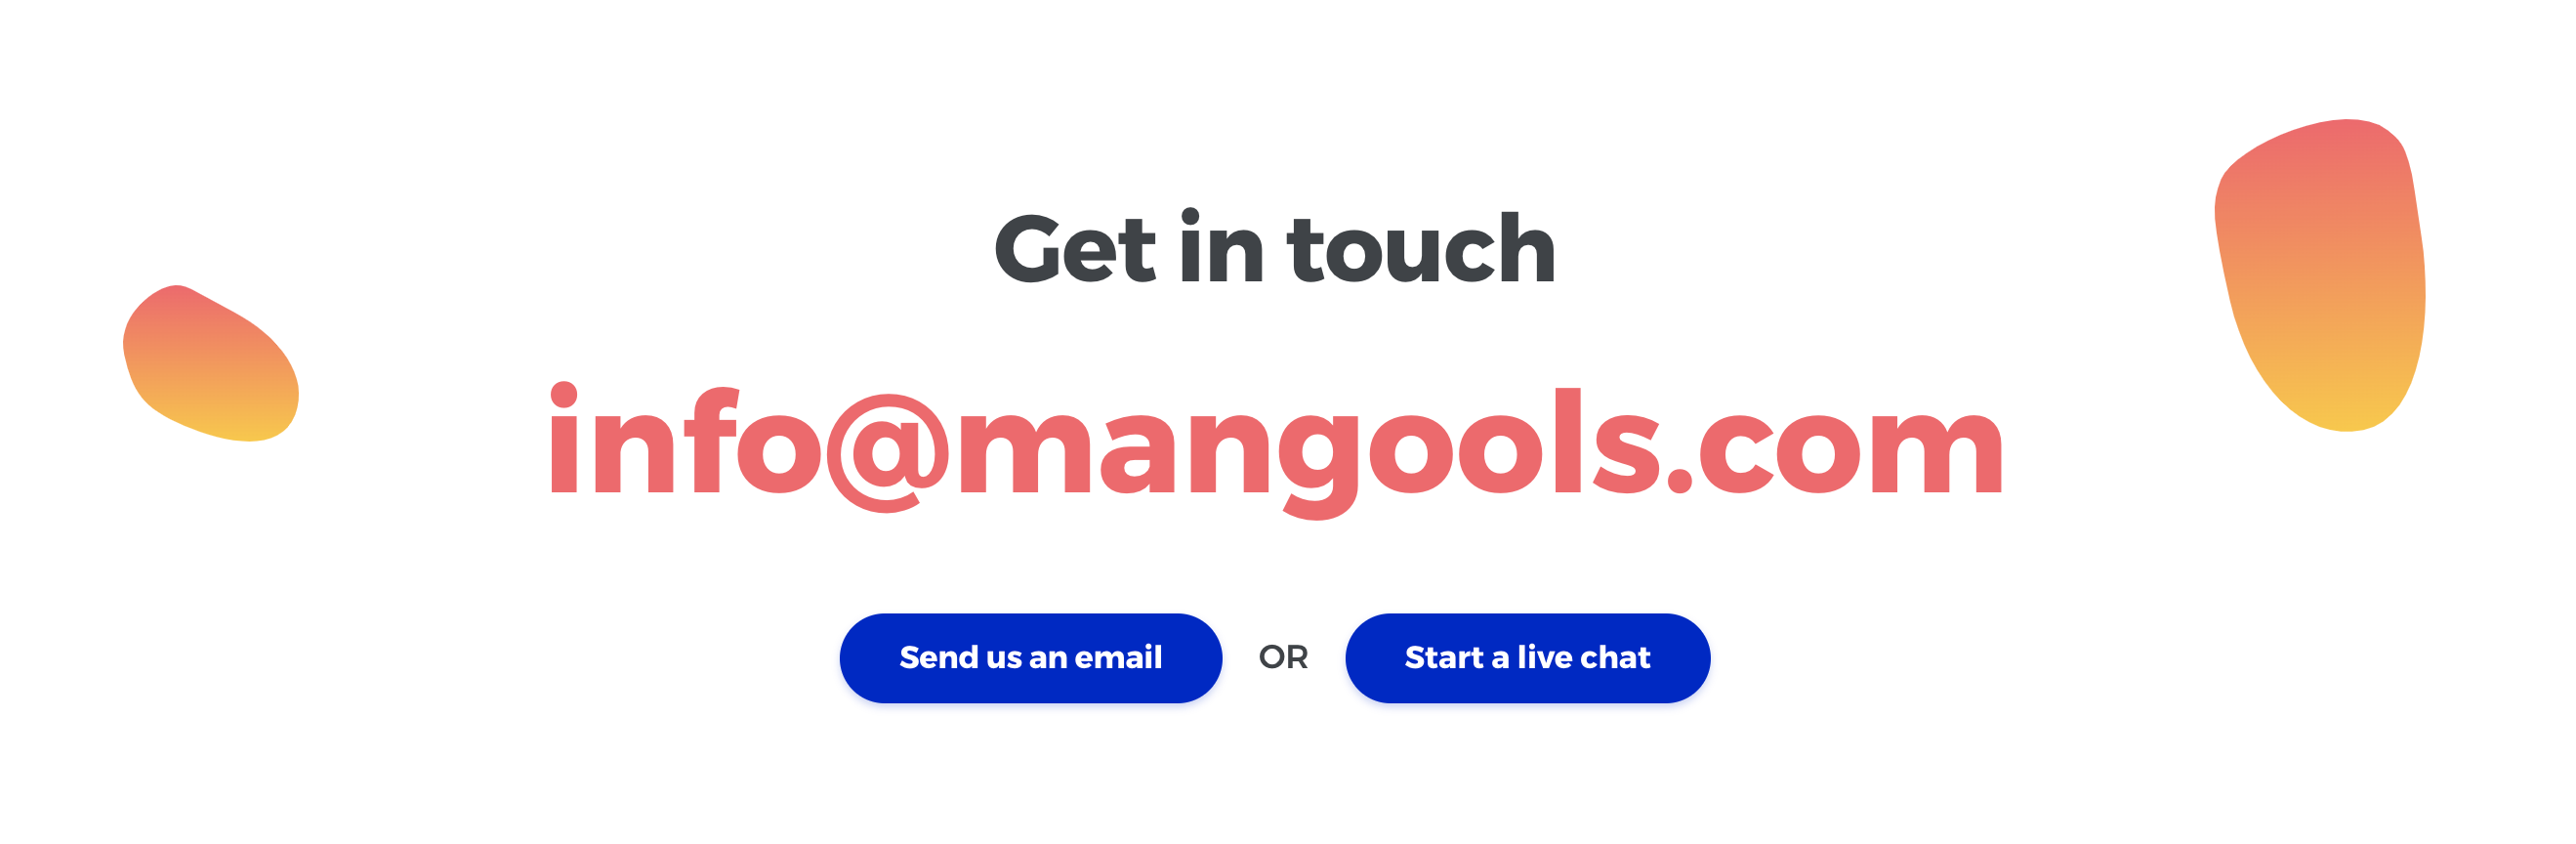 Mangools Support Email